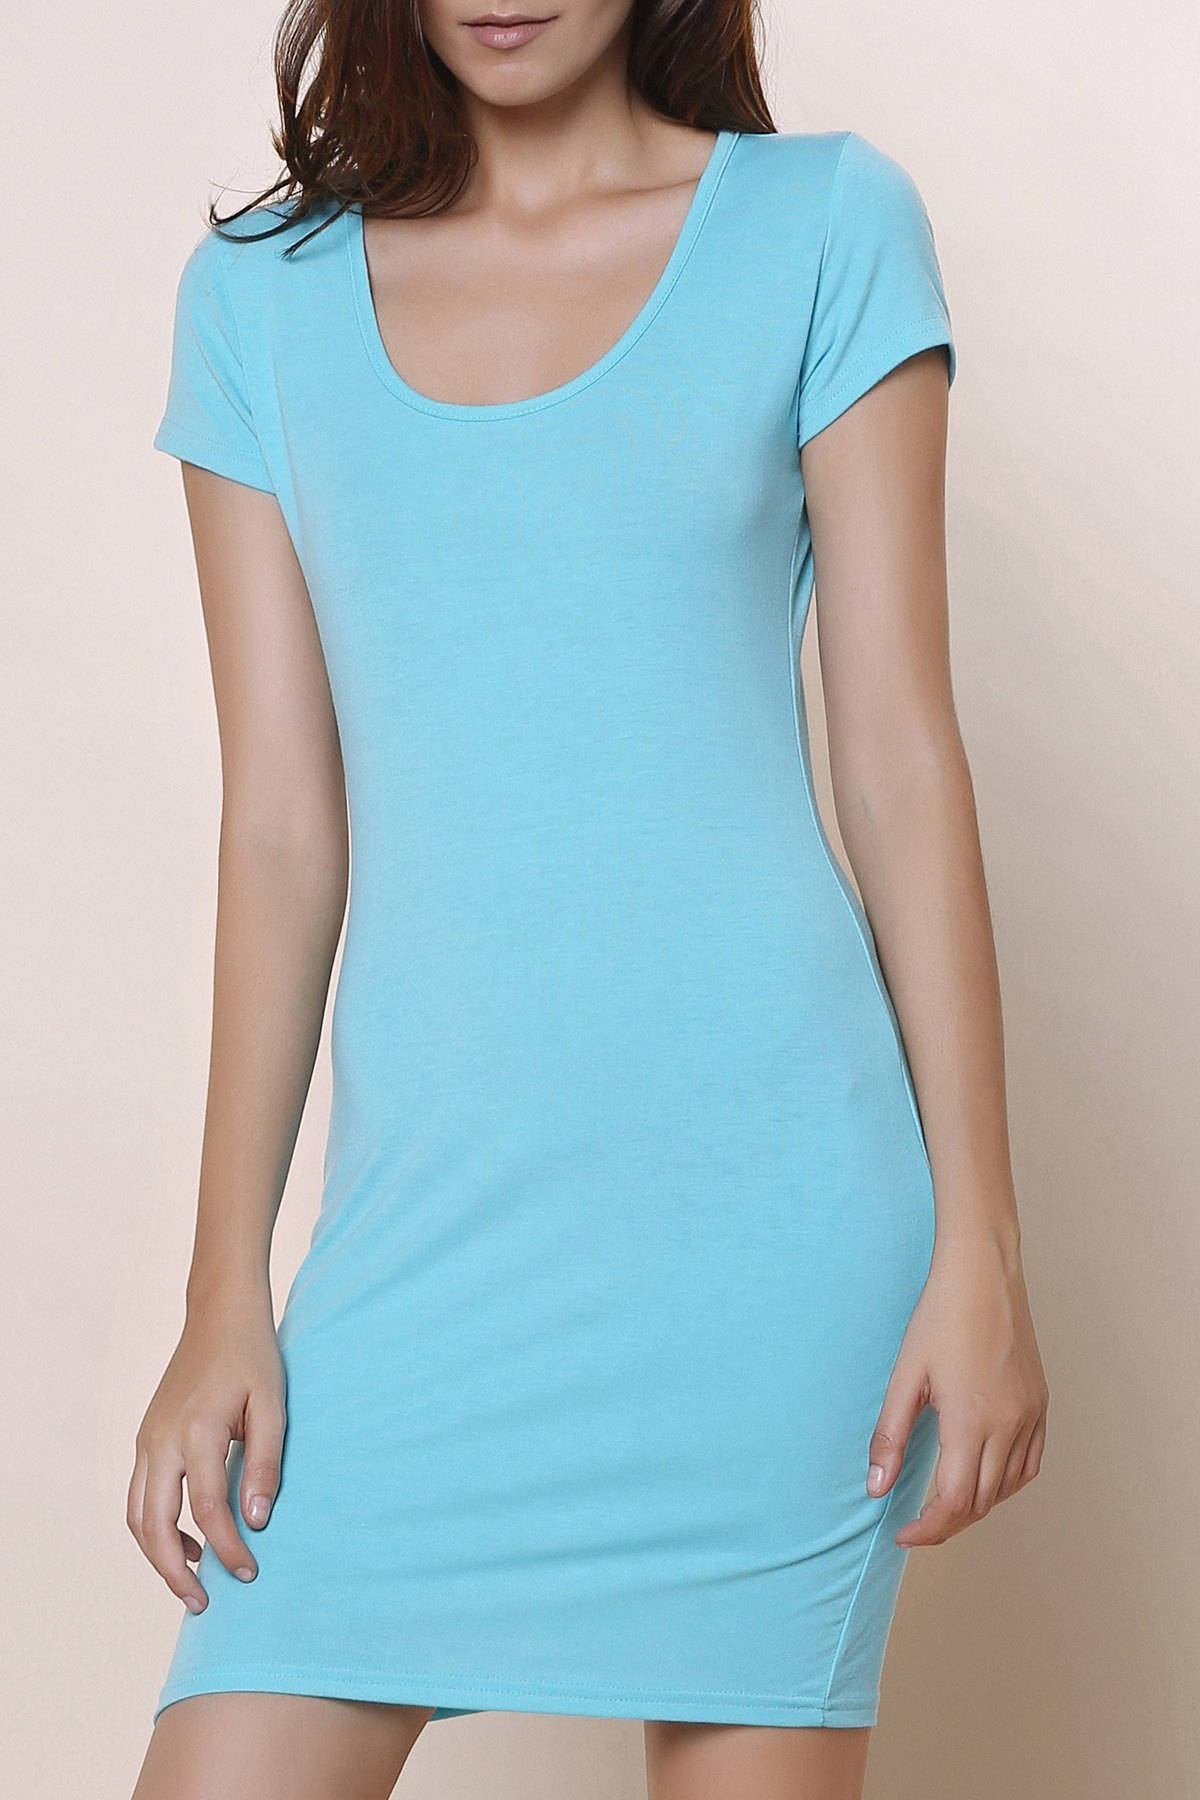 Stylish Solid Color Short Sleeve U-Neck Women's Bodycon Dress - BLUE S